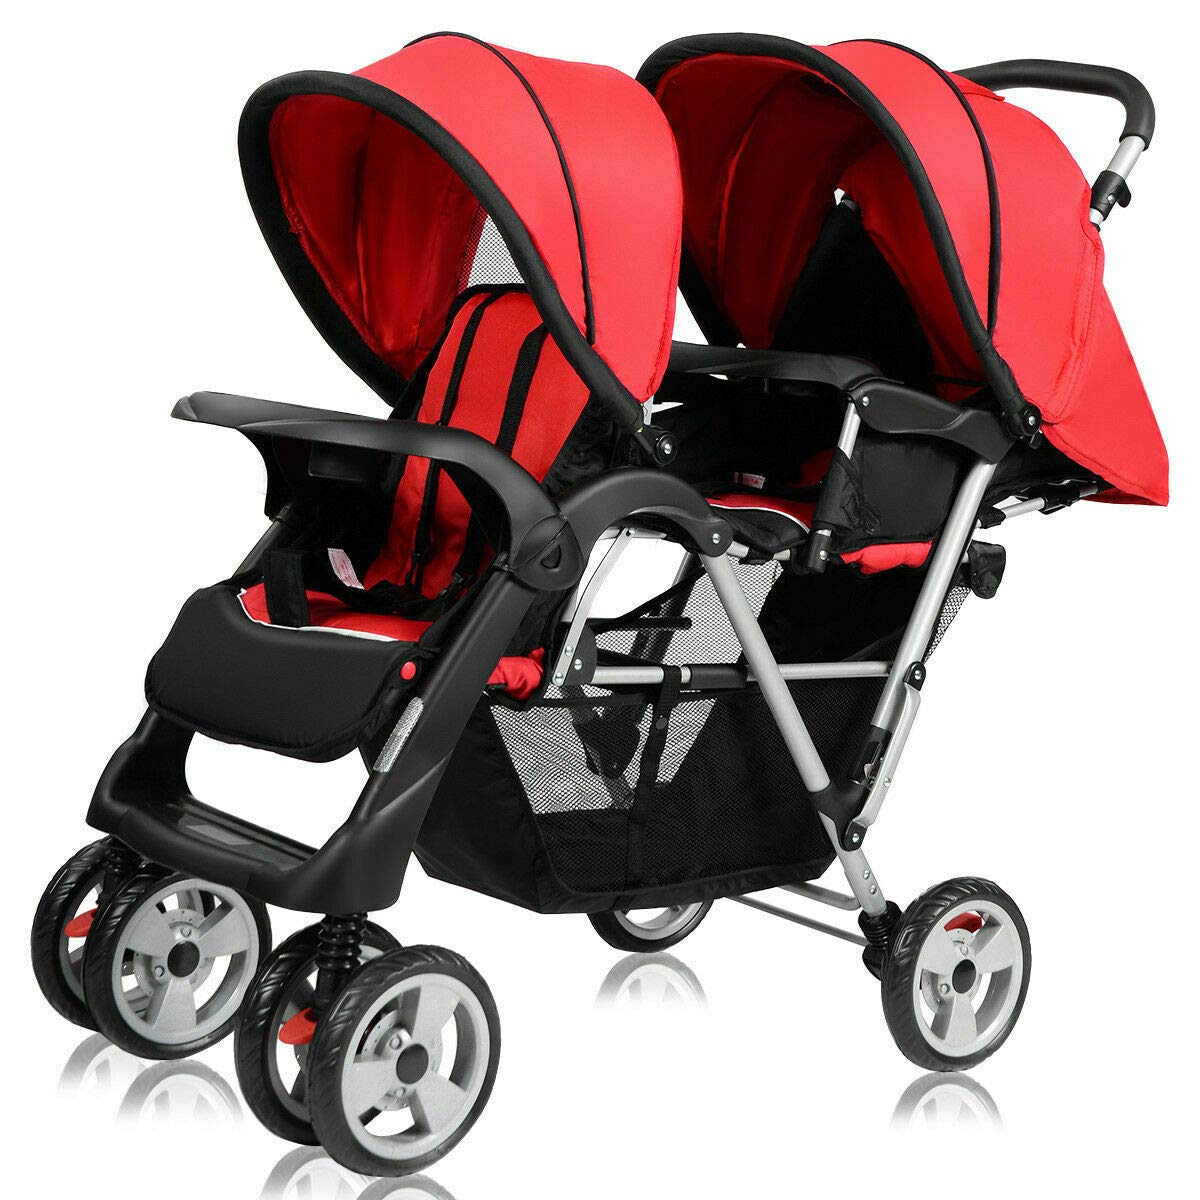 Cozinest Foldable Twin Baby Double Stroller Kids Jogger Travel Infant Pushchair Red